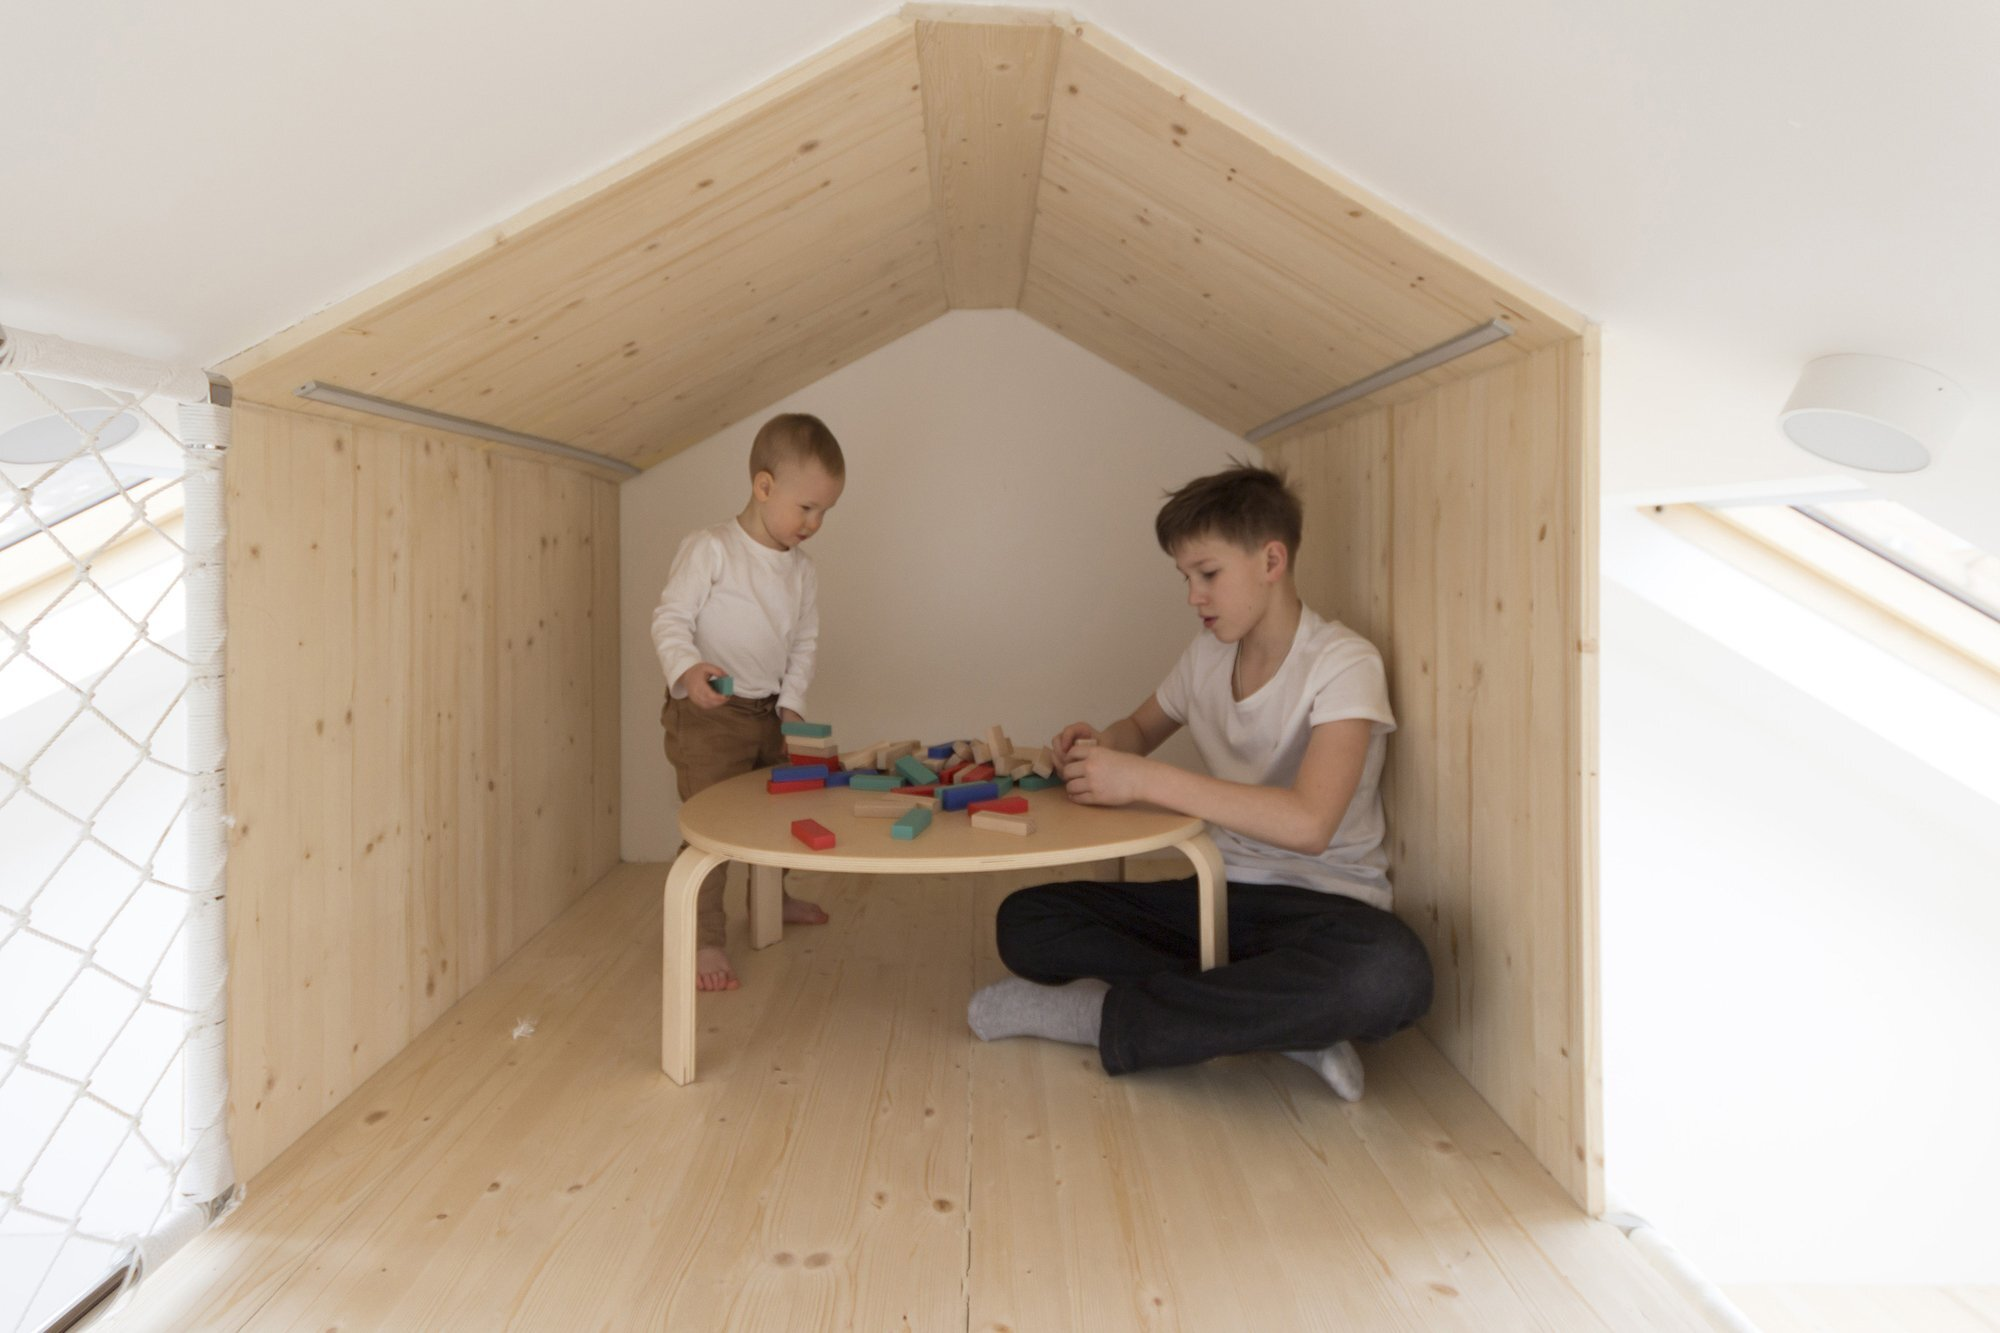 Sleep and Play - Multifunctional Spaces - Ruetemple - Moscow - Loft Play Space - Humble Homes